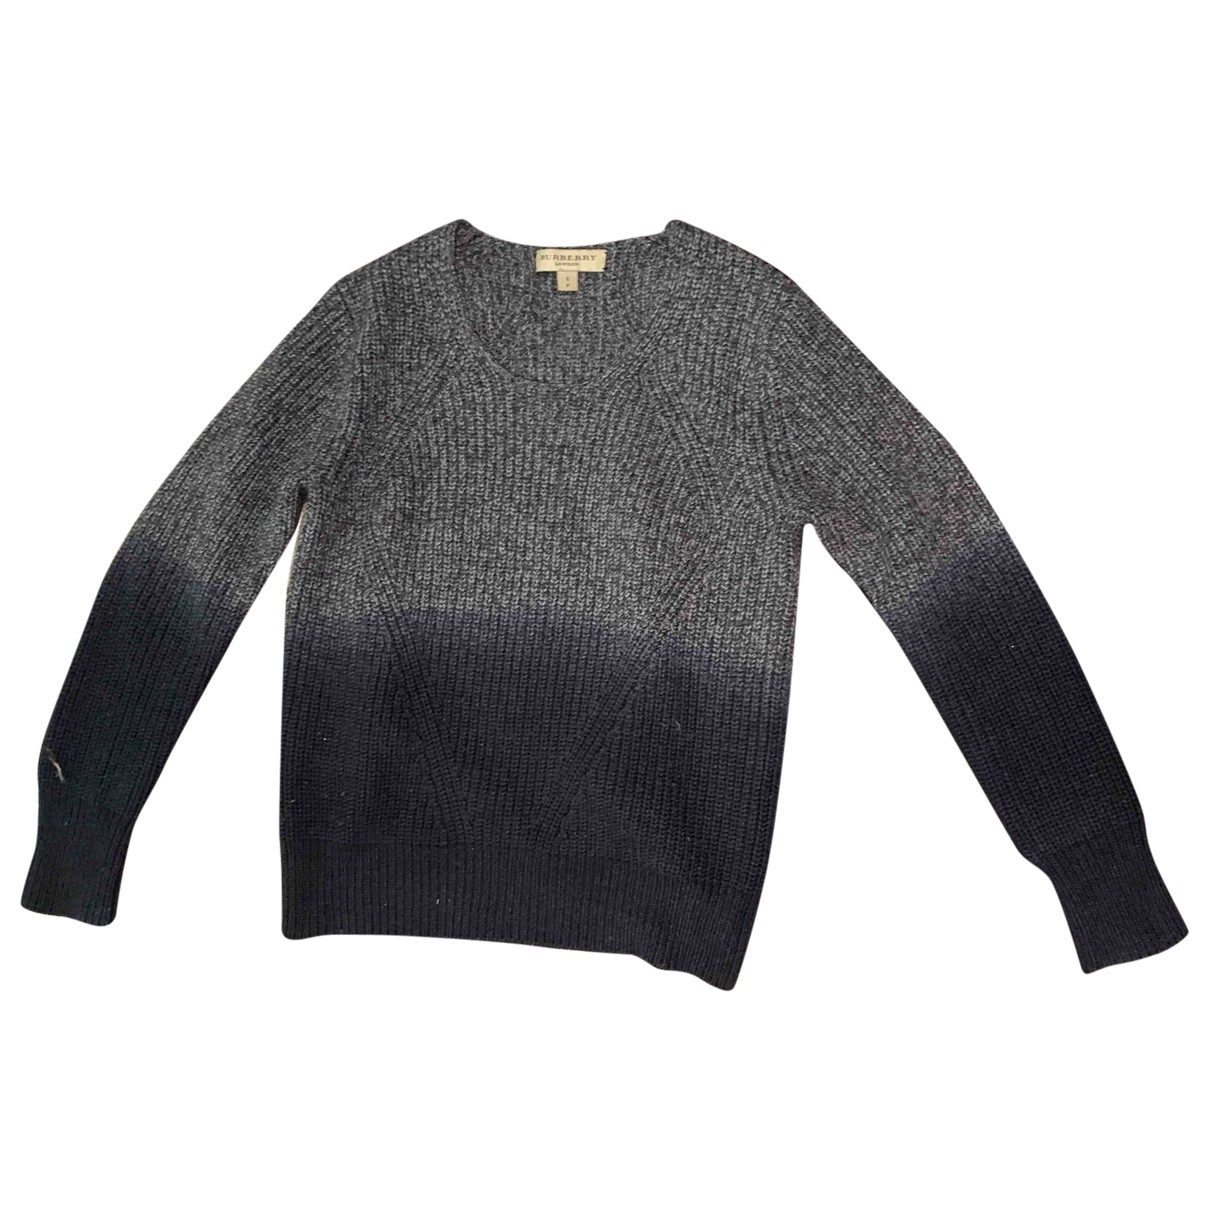 Burberry \N Navy Wool Knitwear for Women S International